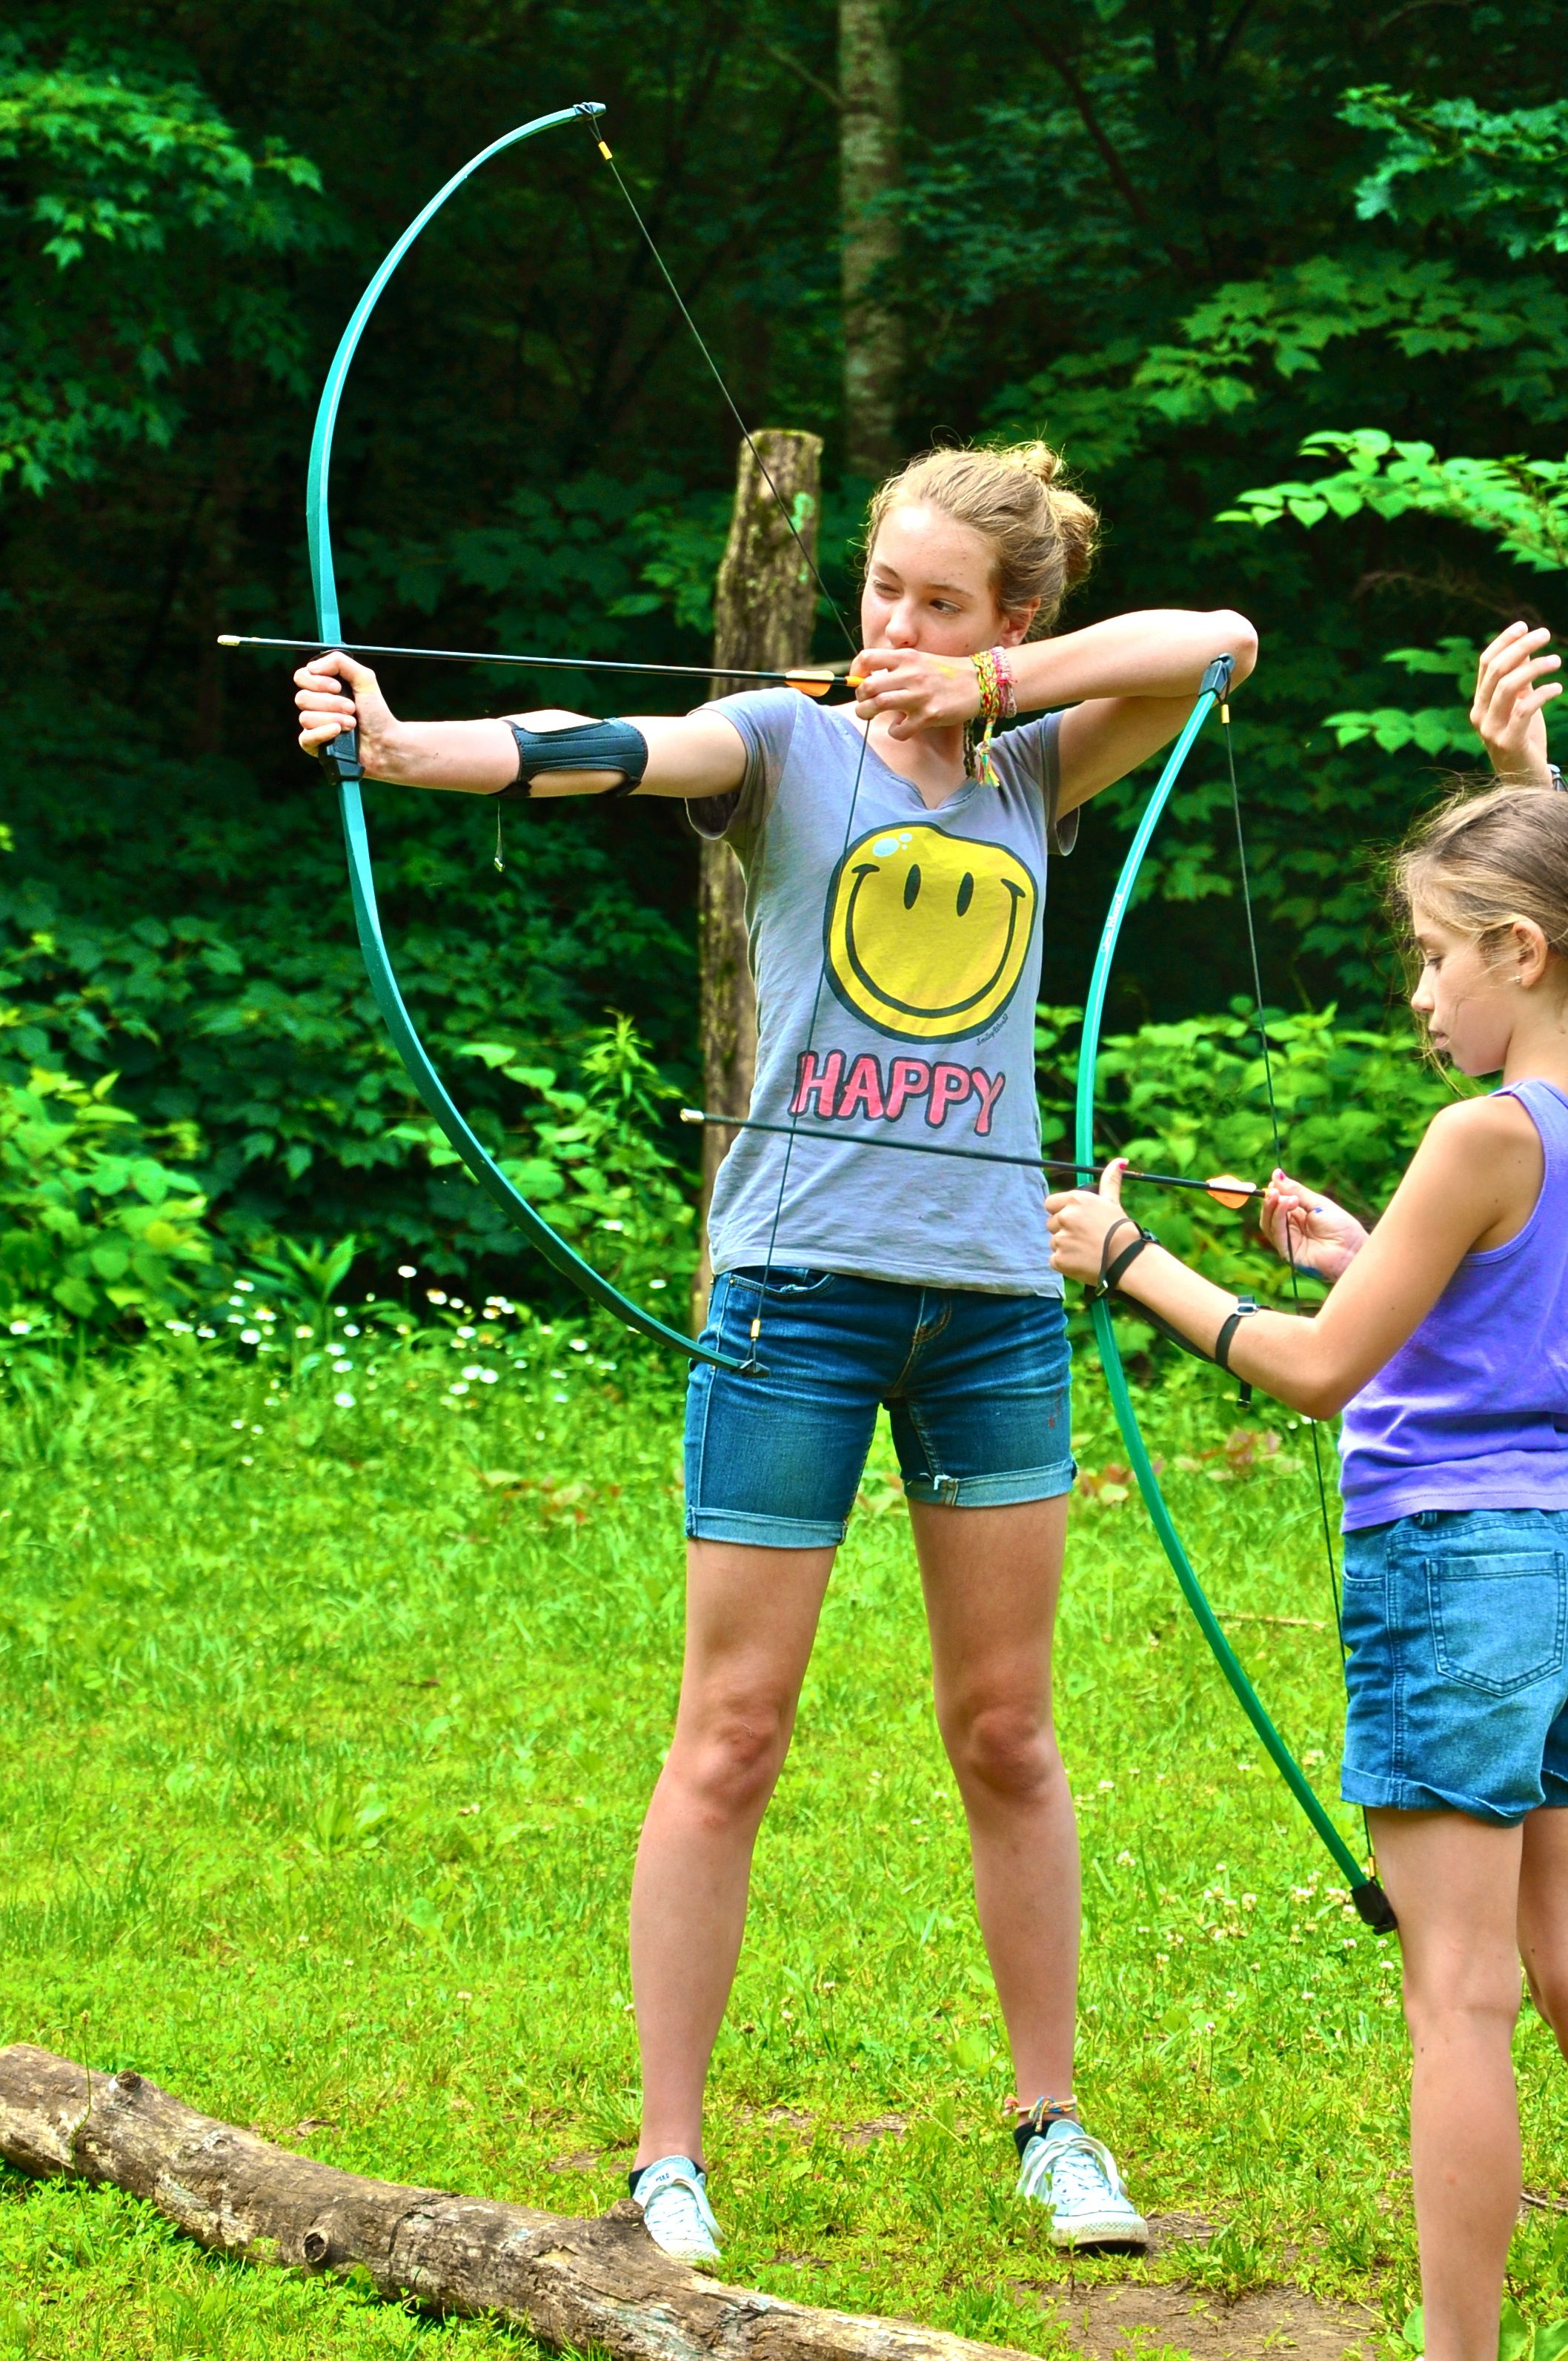 camp-spring-creeks-newest-cit-yeelen-gets-her-turn-in-archery.jpg